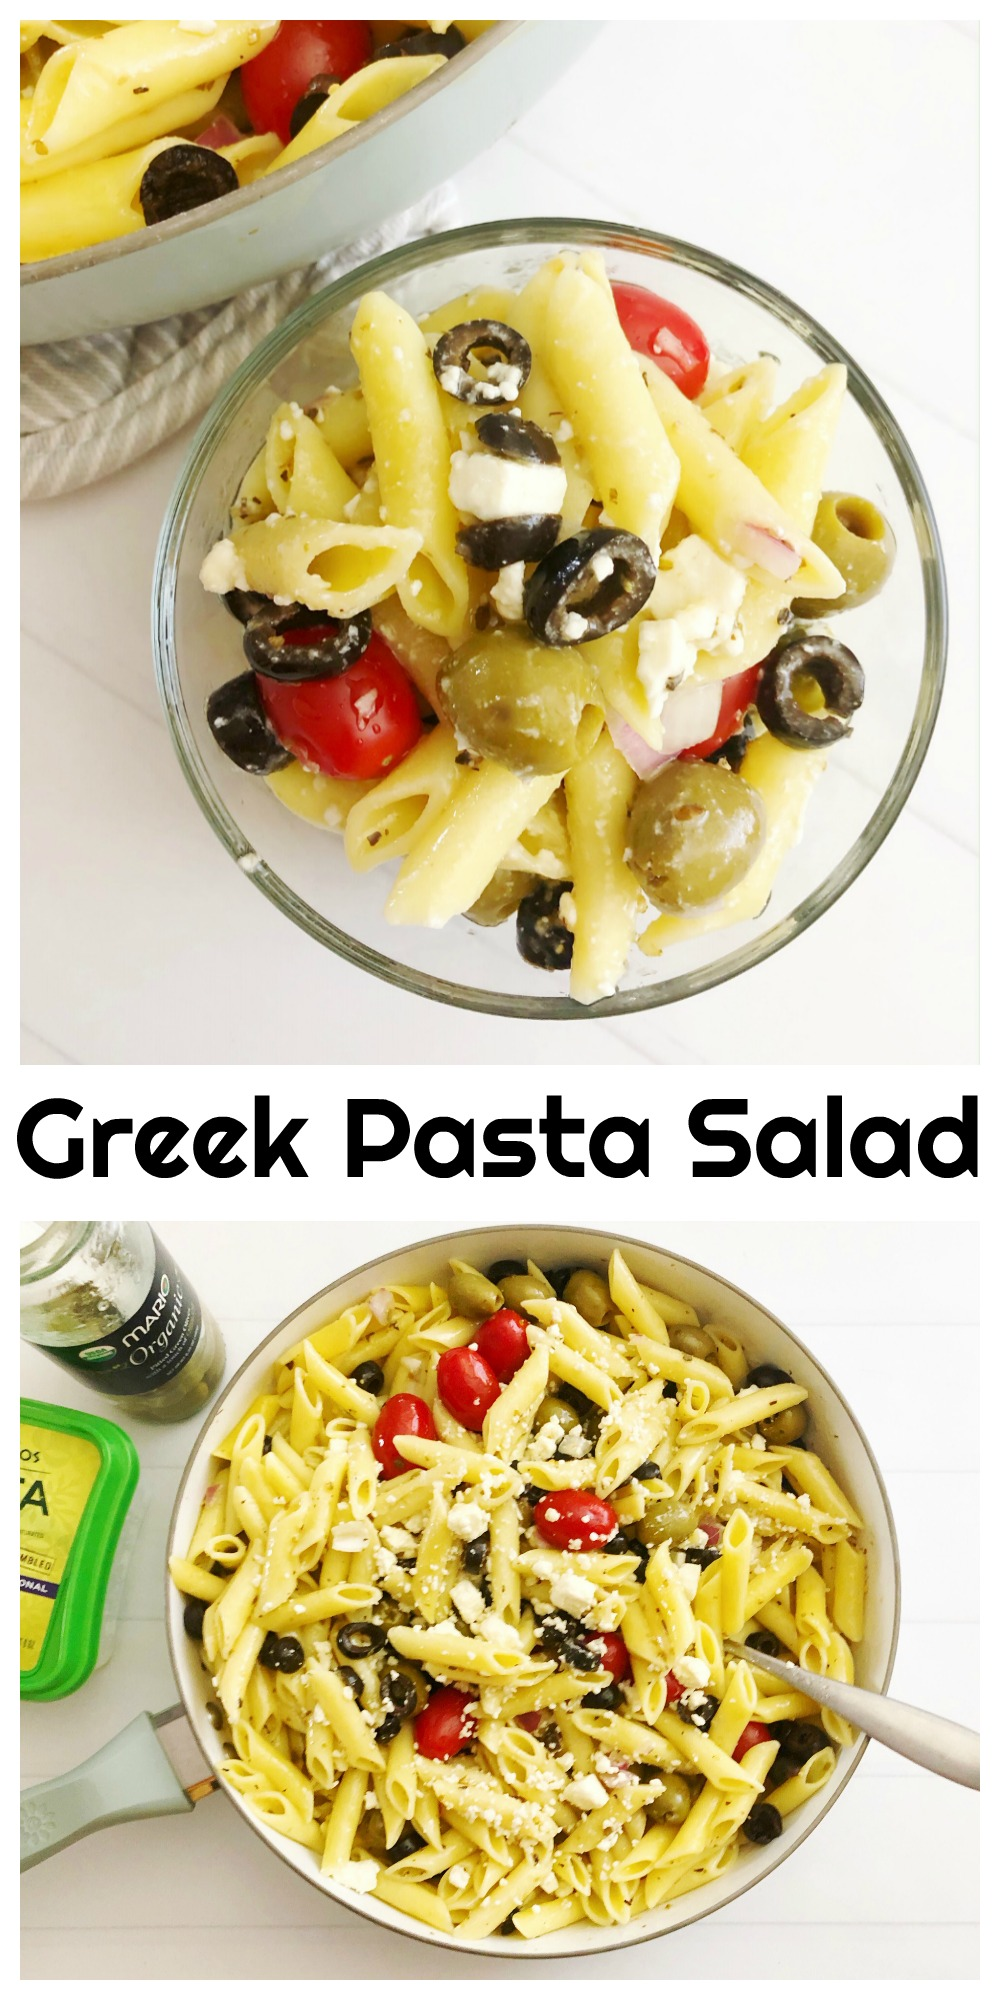 This Greek Pasta Salad recipe will be the hit of your summer cookouts this year. It's delicious, light and makes the perfect BBQ side dish!